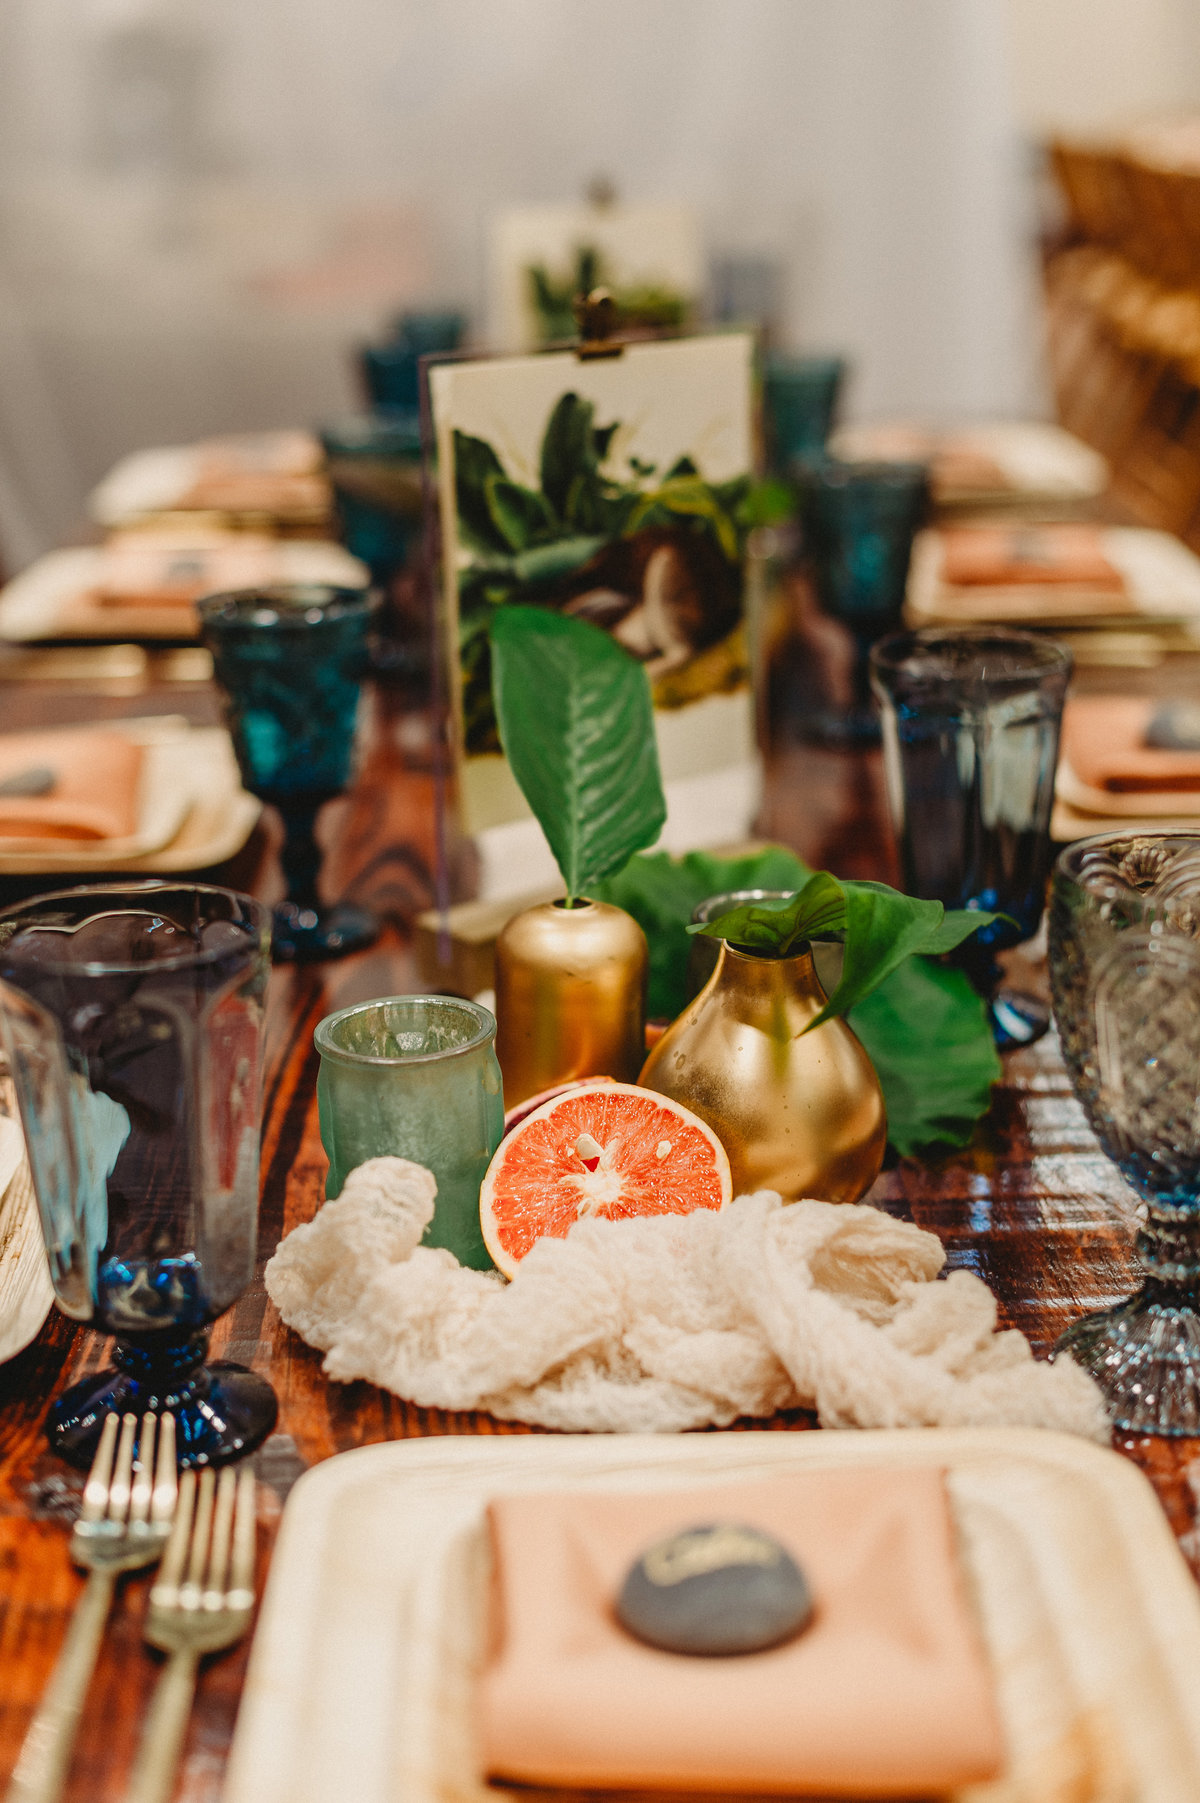 Tropical design with fruits and gold silverware and blue water goblets